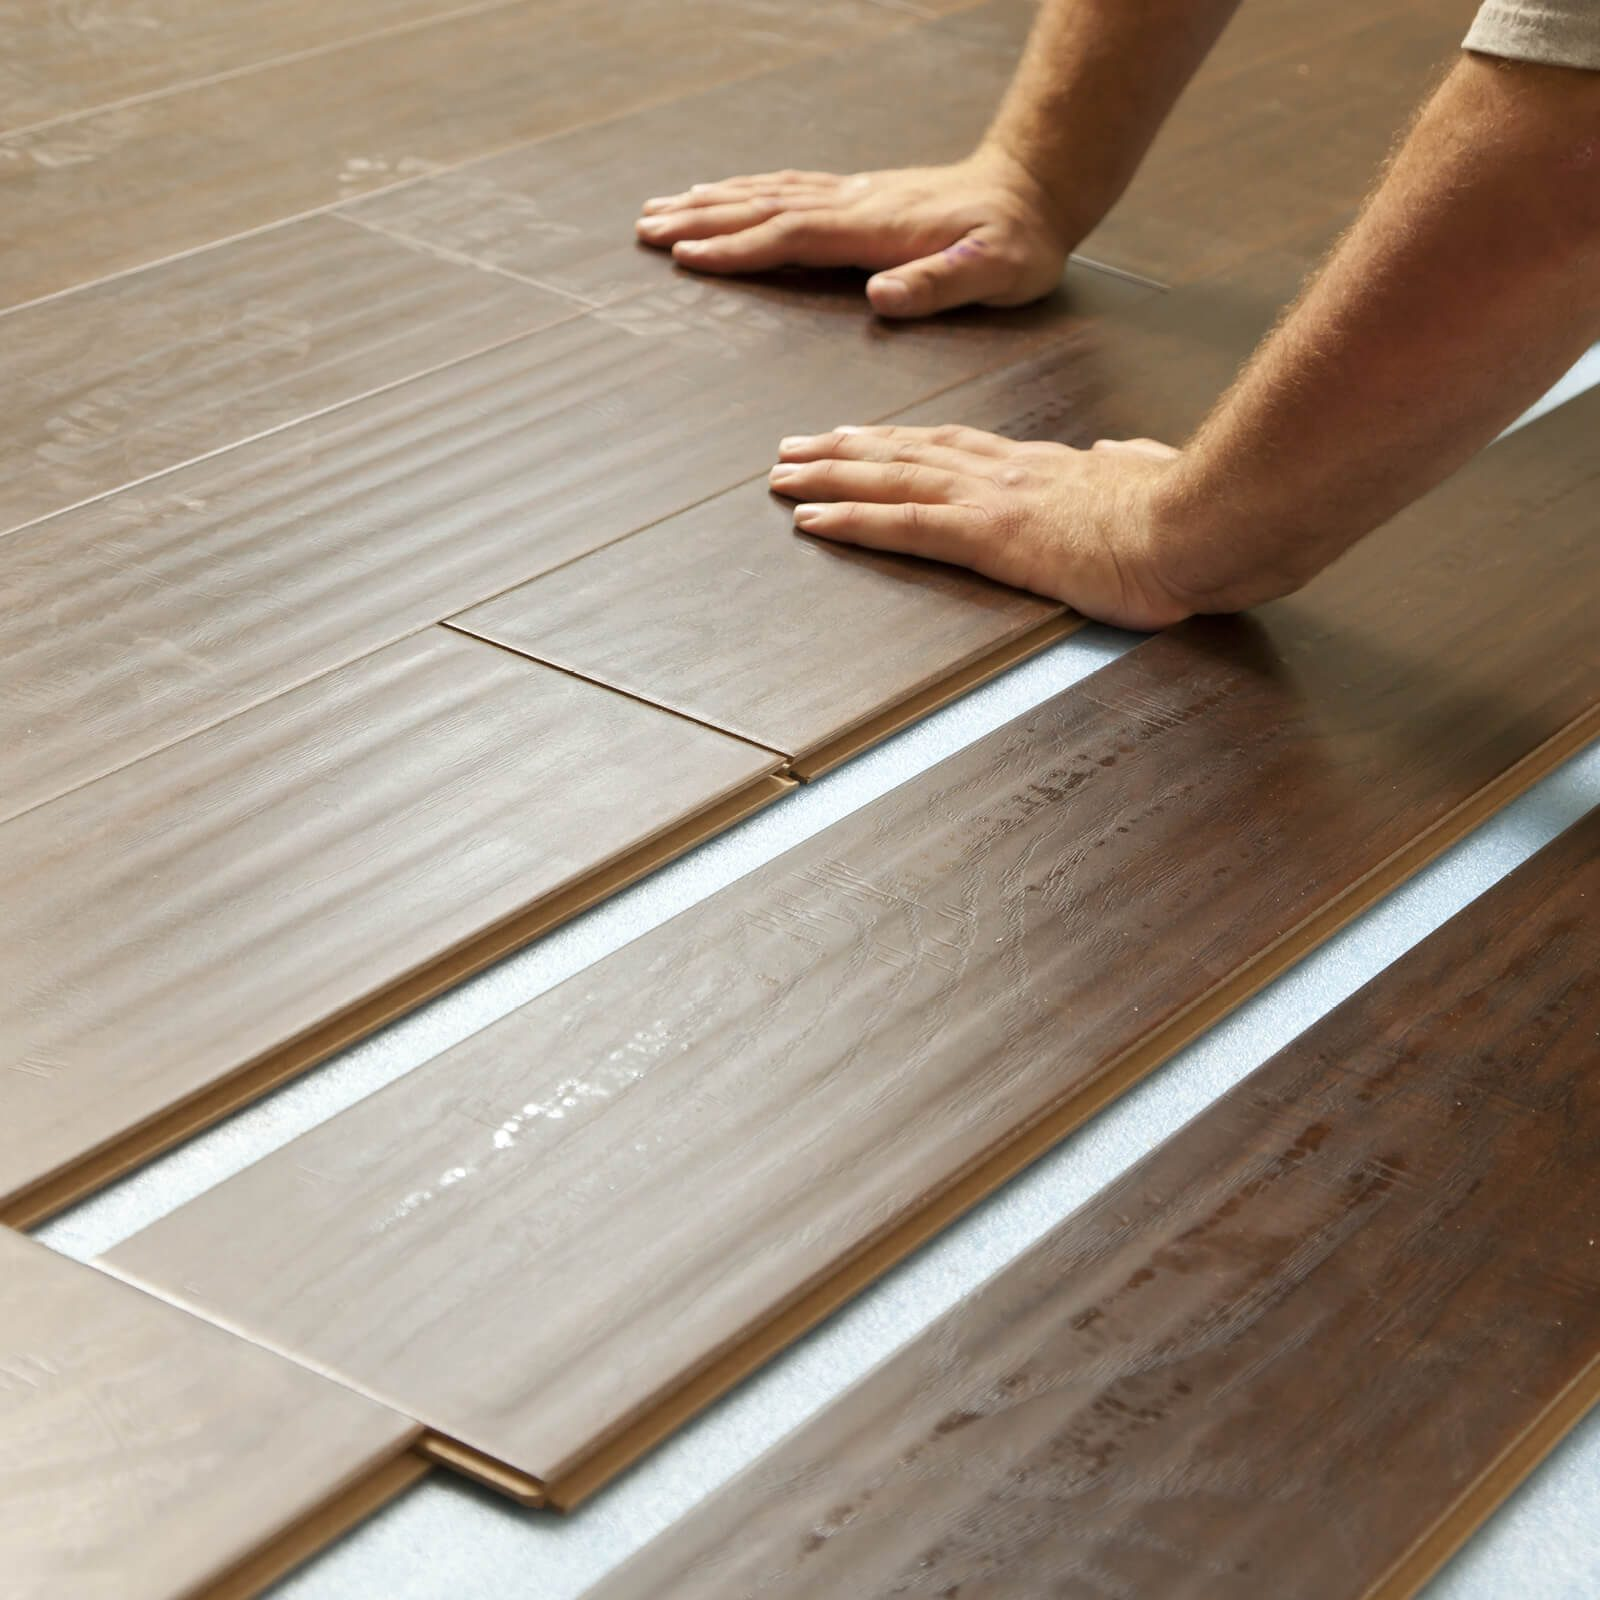 Installation of your new hardwood floors | BMG Flooring & Tile Center